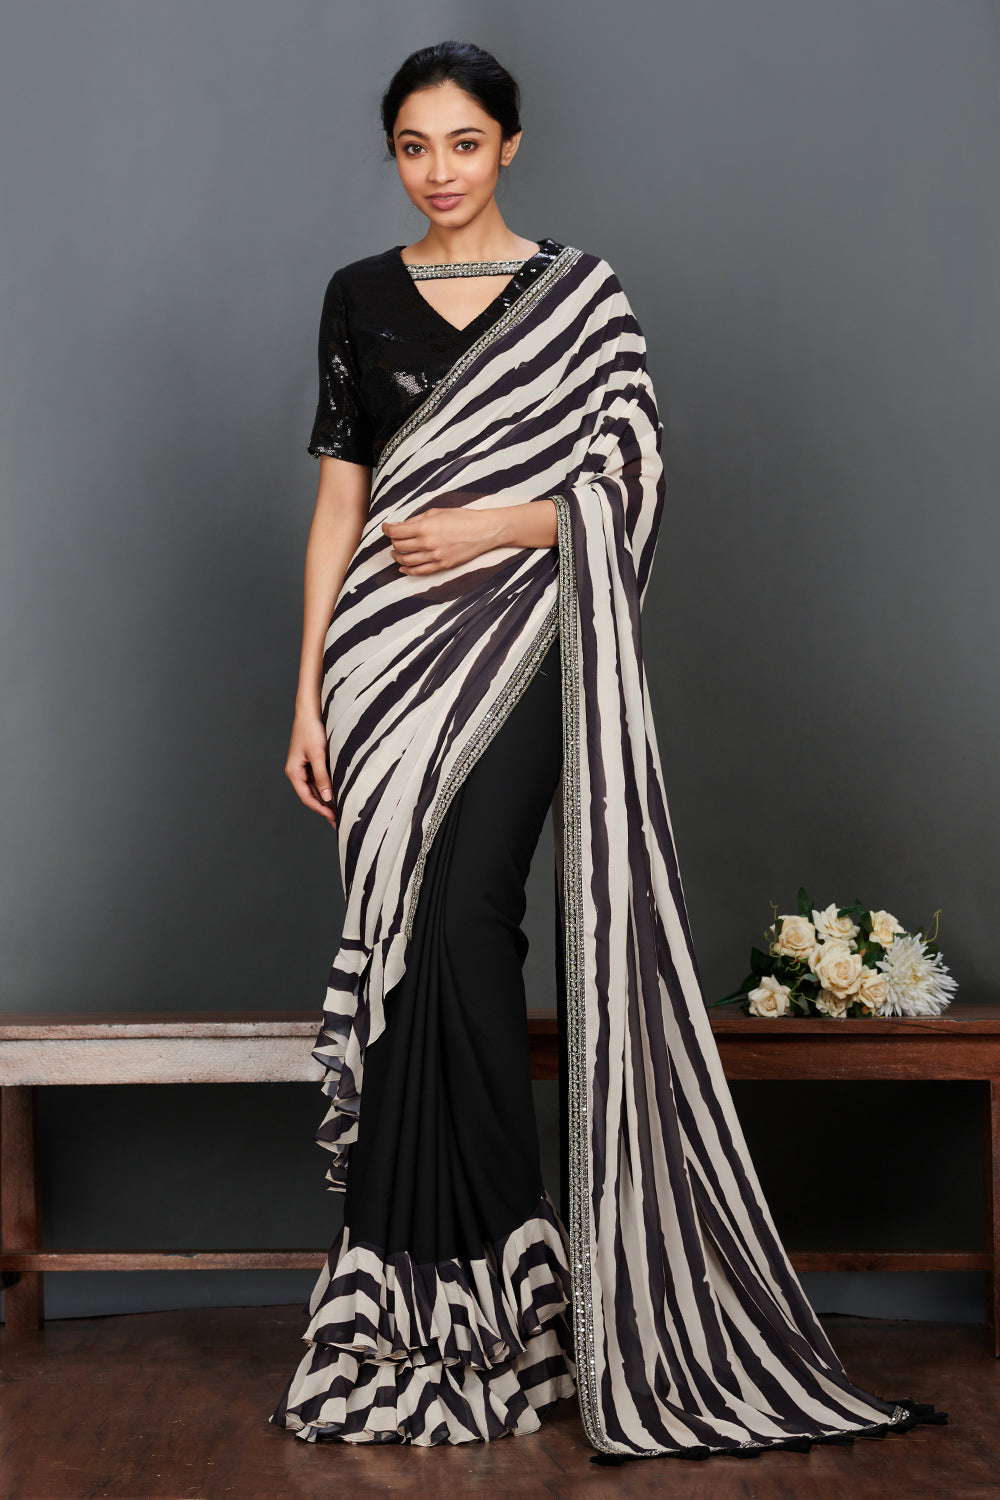 Buy stunning black and white striped saree online in USA with sequin saree blouse. Make a fashion statement on festive occasions and weddings with designer sarees, embroidered saris, handwoven saris, party wear sarees from Pure Elegance Indian fashion store in USA.-full view